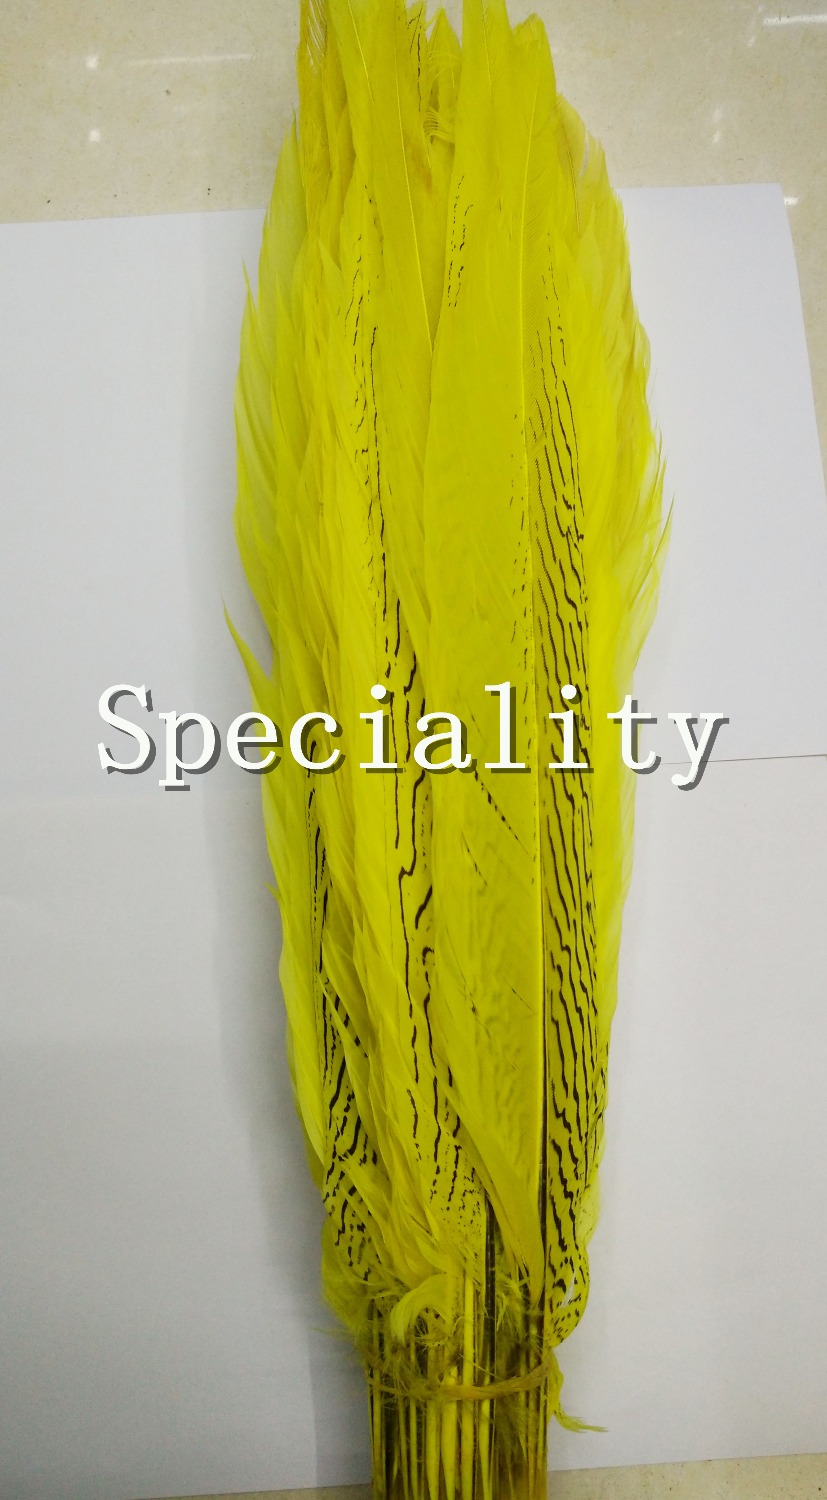 Free Shipping 50pcs Silver pheasant Feathers 40-45cm 16-18inch yellow Lady Amhersts pheasant DIY Feathers Cloth accessory